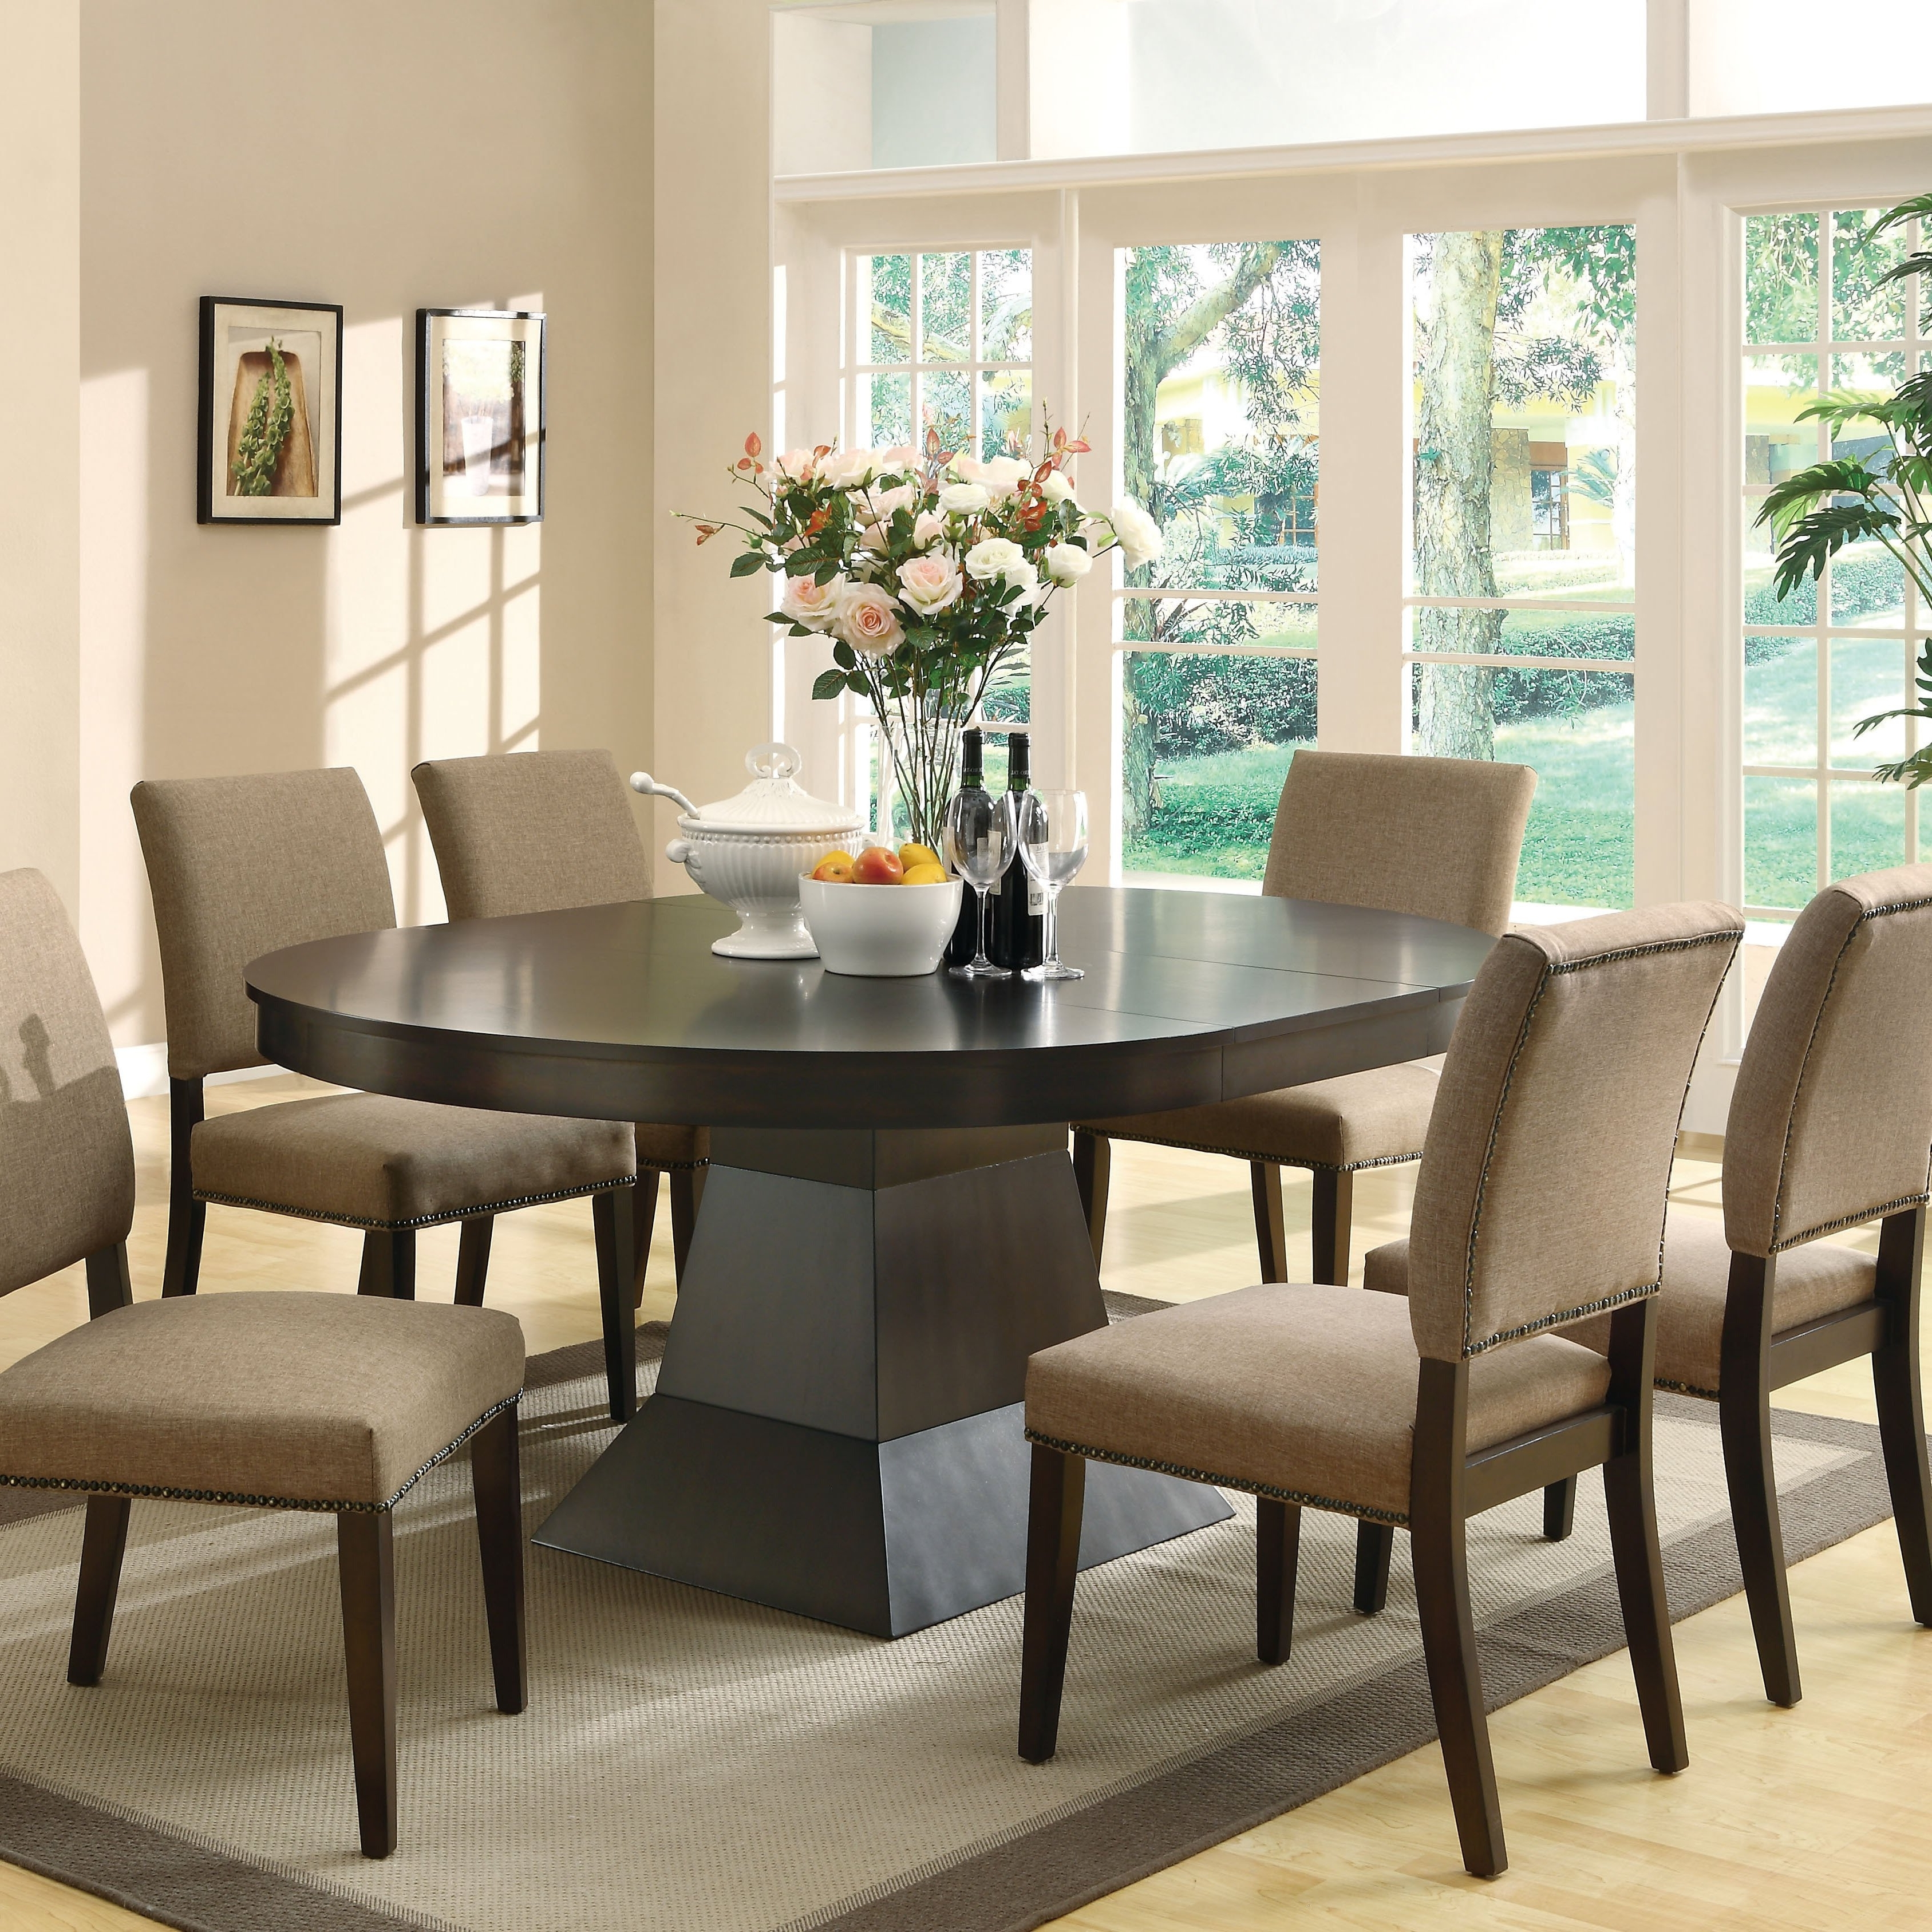 Widely Used Shop Coaster Company Myrtle Oval Dining Table – Coffee – On Sale For Oval Dining Tables For Sale (View 22 of 25)